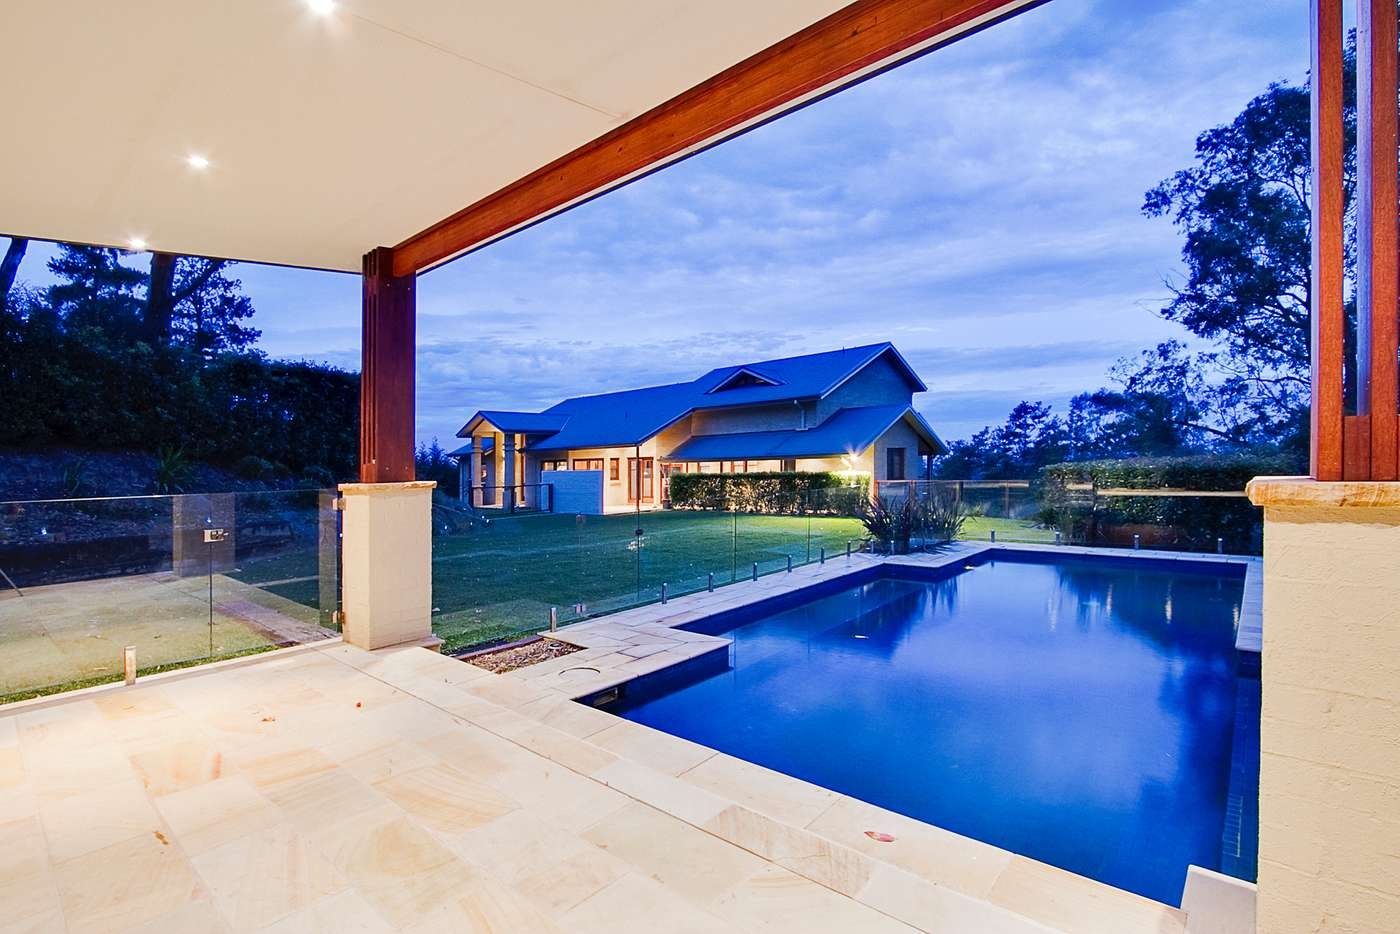 Main view of Homely acreageSemiRural listing, 45 Serpentine Lane, Bowen Mountain NSW 2753